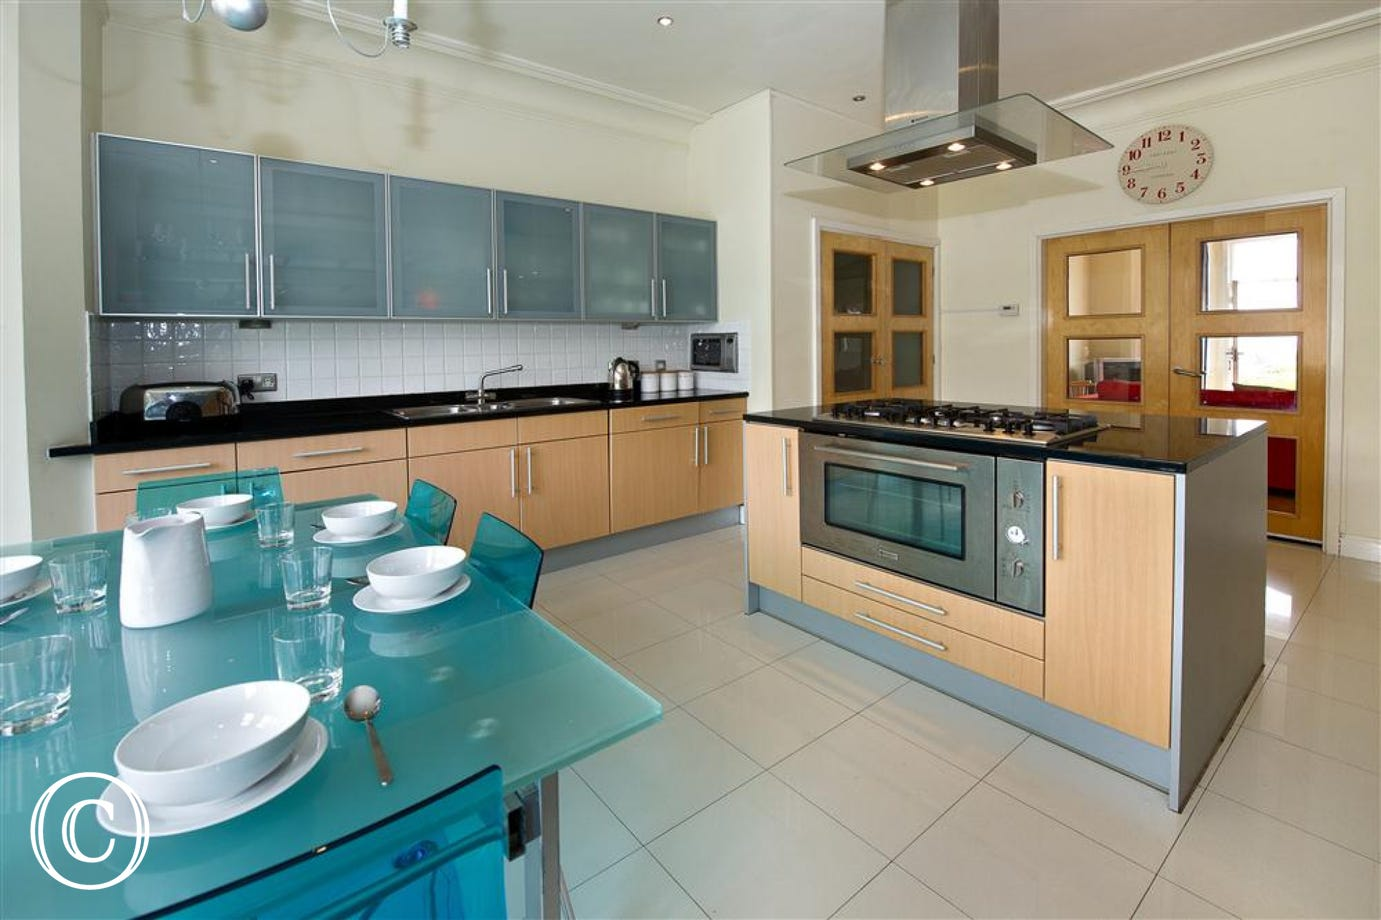 Fully renovated kitchen with modern units and an island with a 5 hob integrated cooker